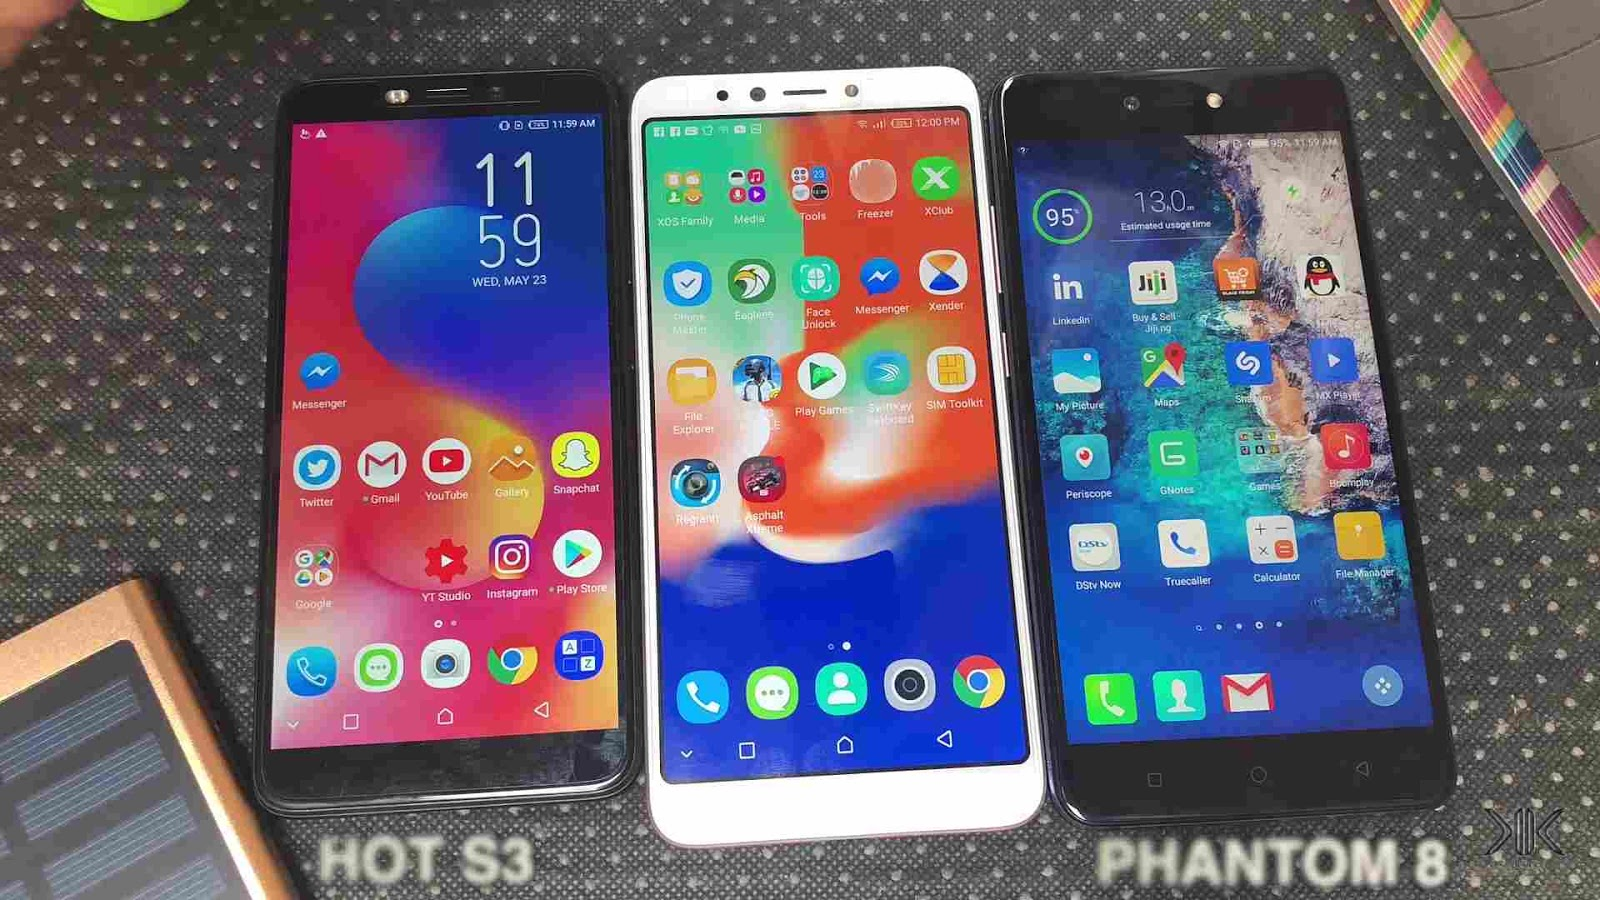 Infinix Hot 6 Pro side by side the Hot S3 and Tecno Phantom 8